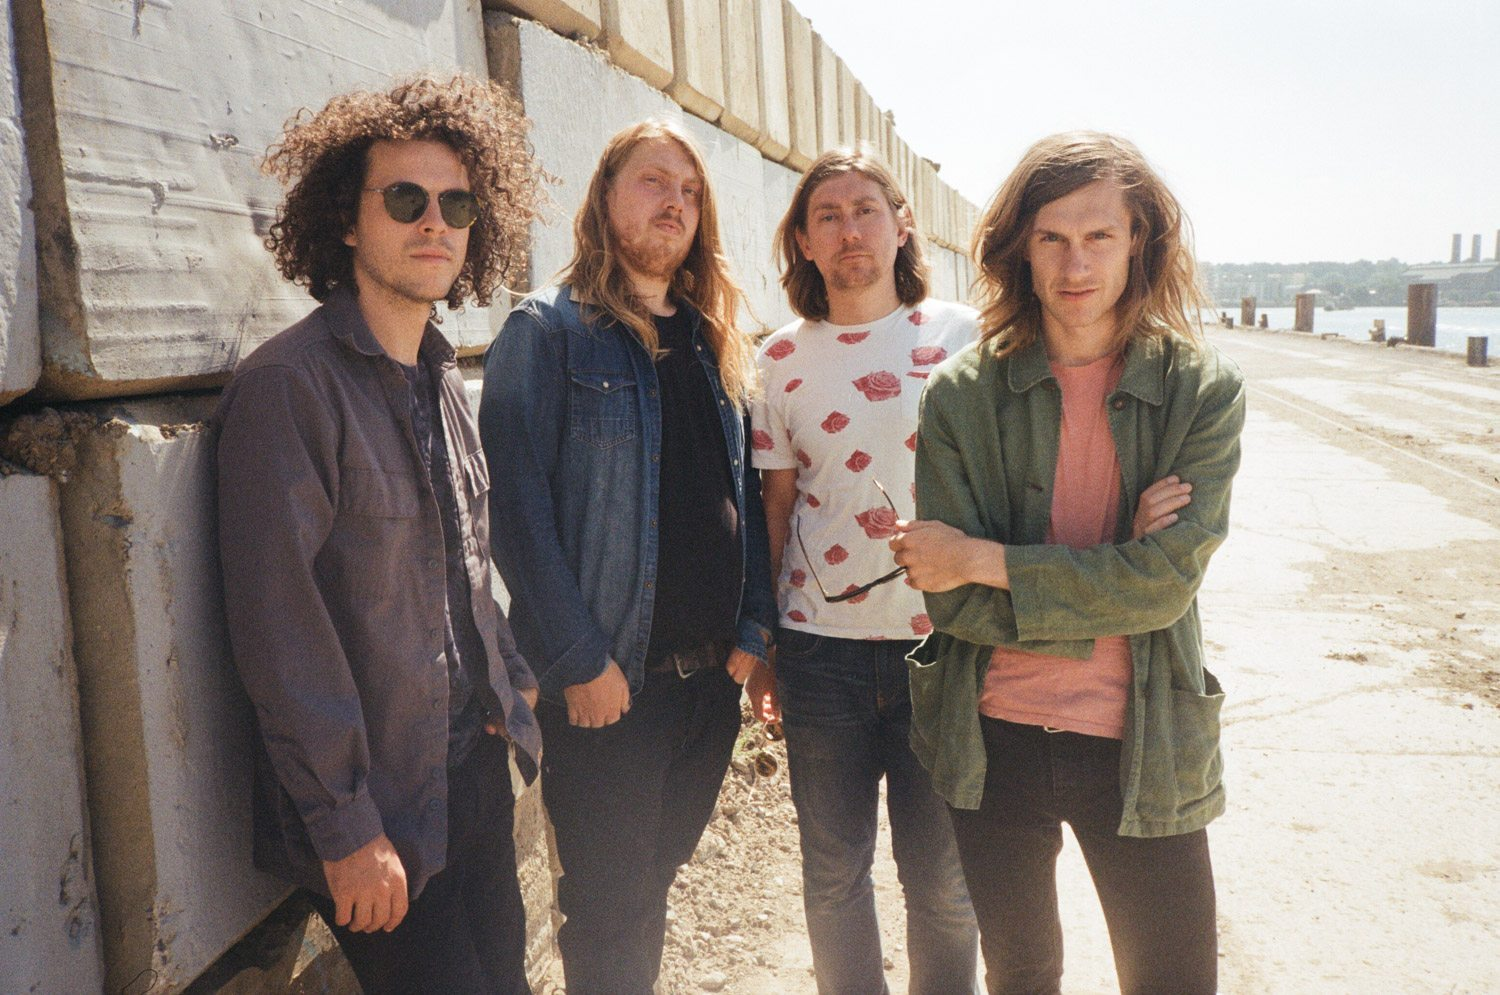 Syd Arthur's Liam Magill on the band's Sept. 27 show at Terminal 5, New York, Harvest Records and more